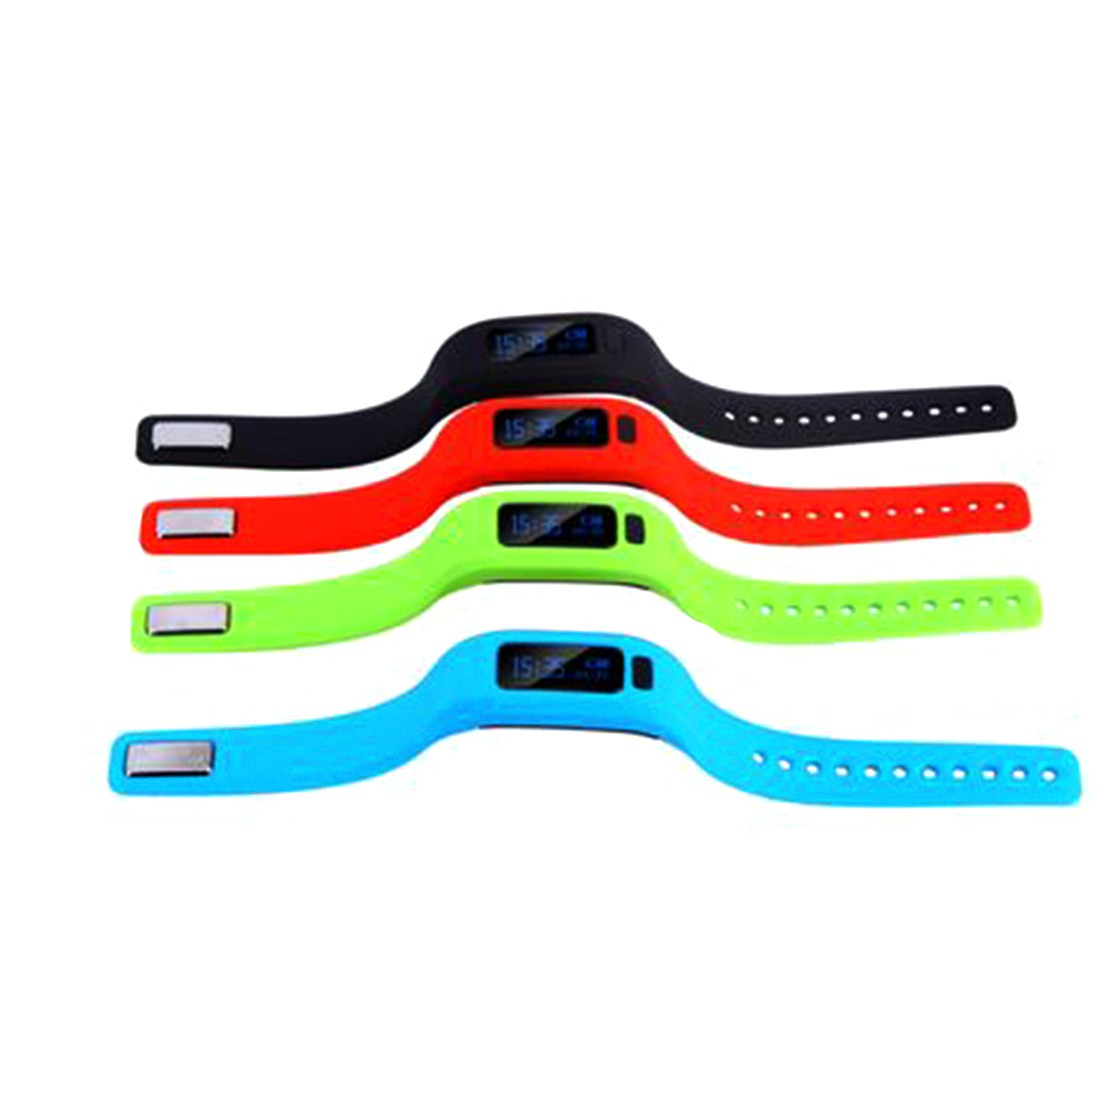 New Arrival Moving up2 Fitness Tracker Bluetooth Smartband Sport Bracelet Smart Band Wristband Pedometer For IPhone